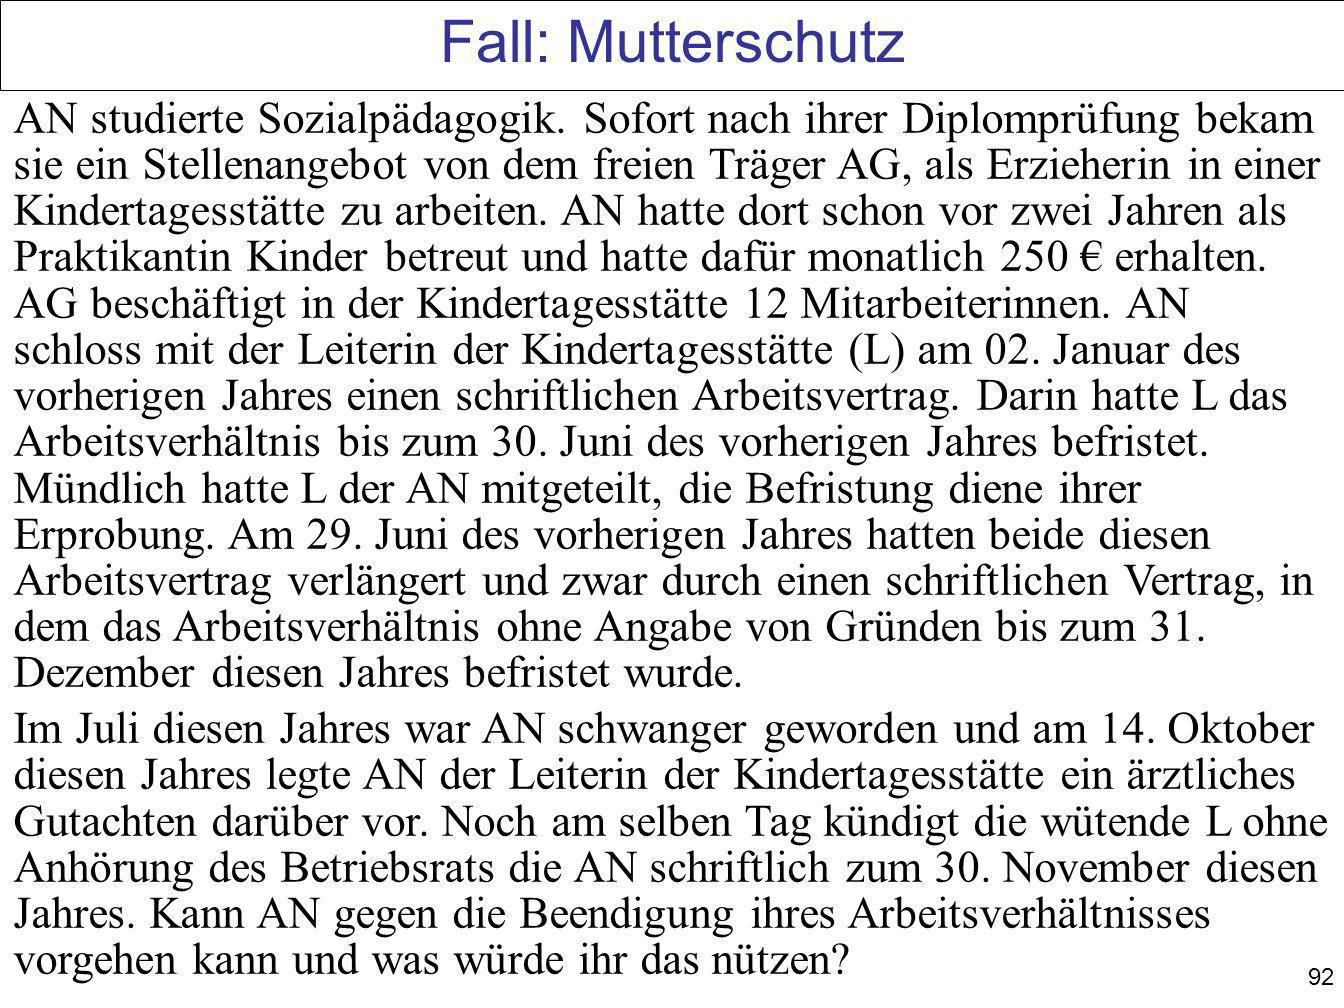 Fall: Mutterschutz